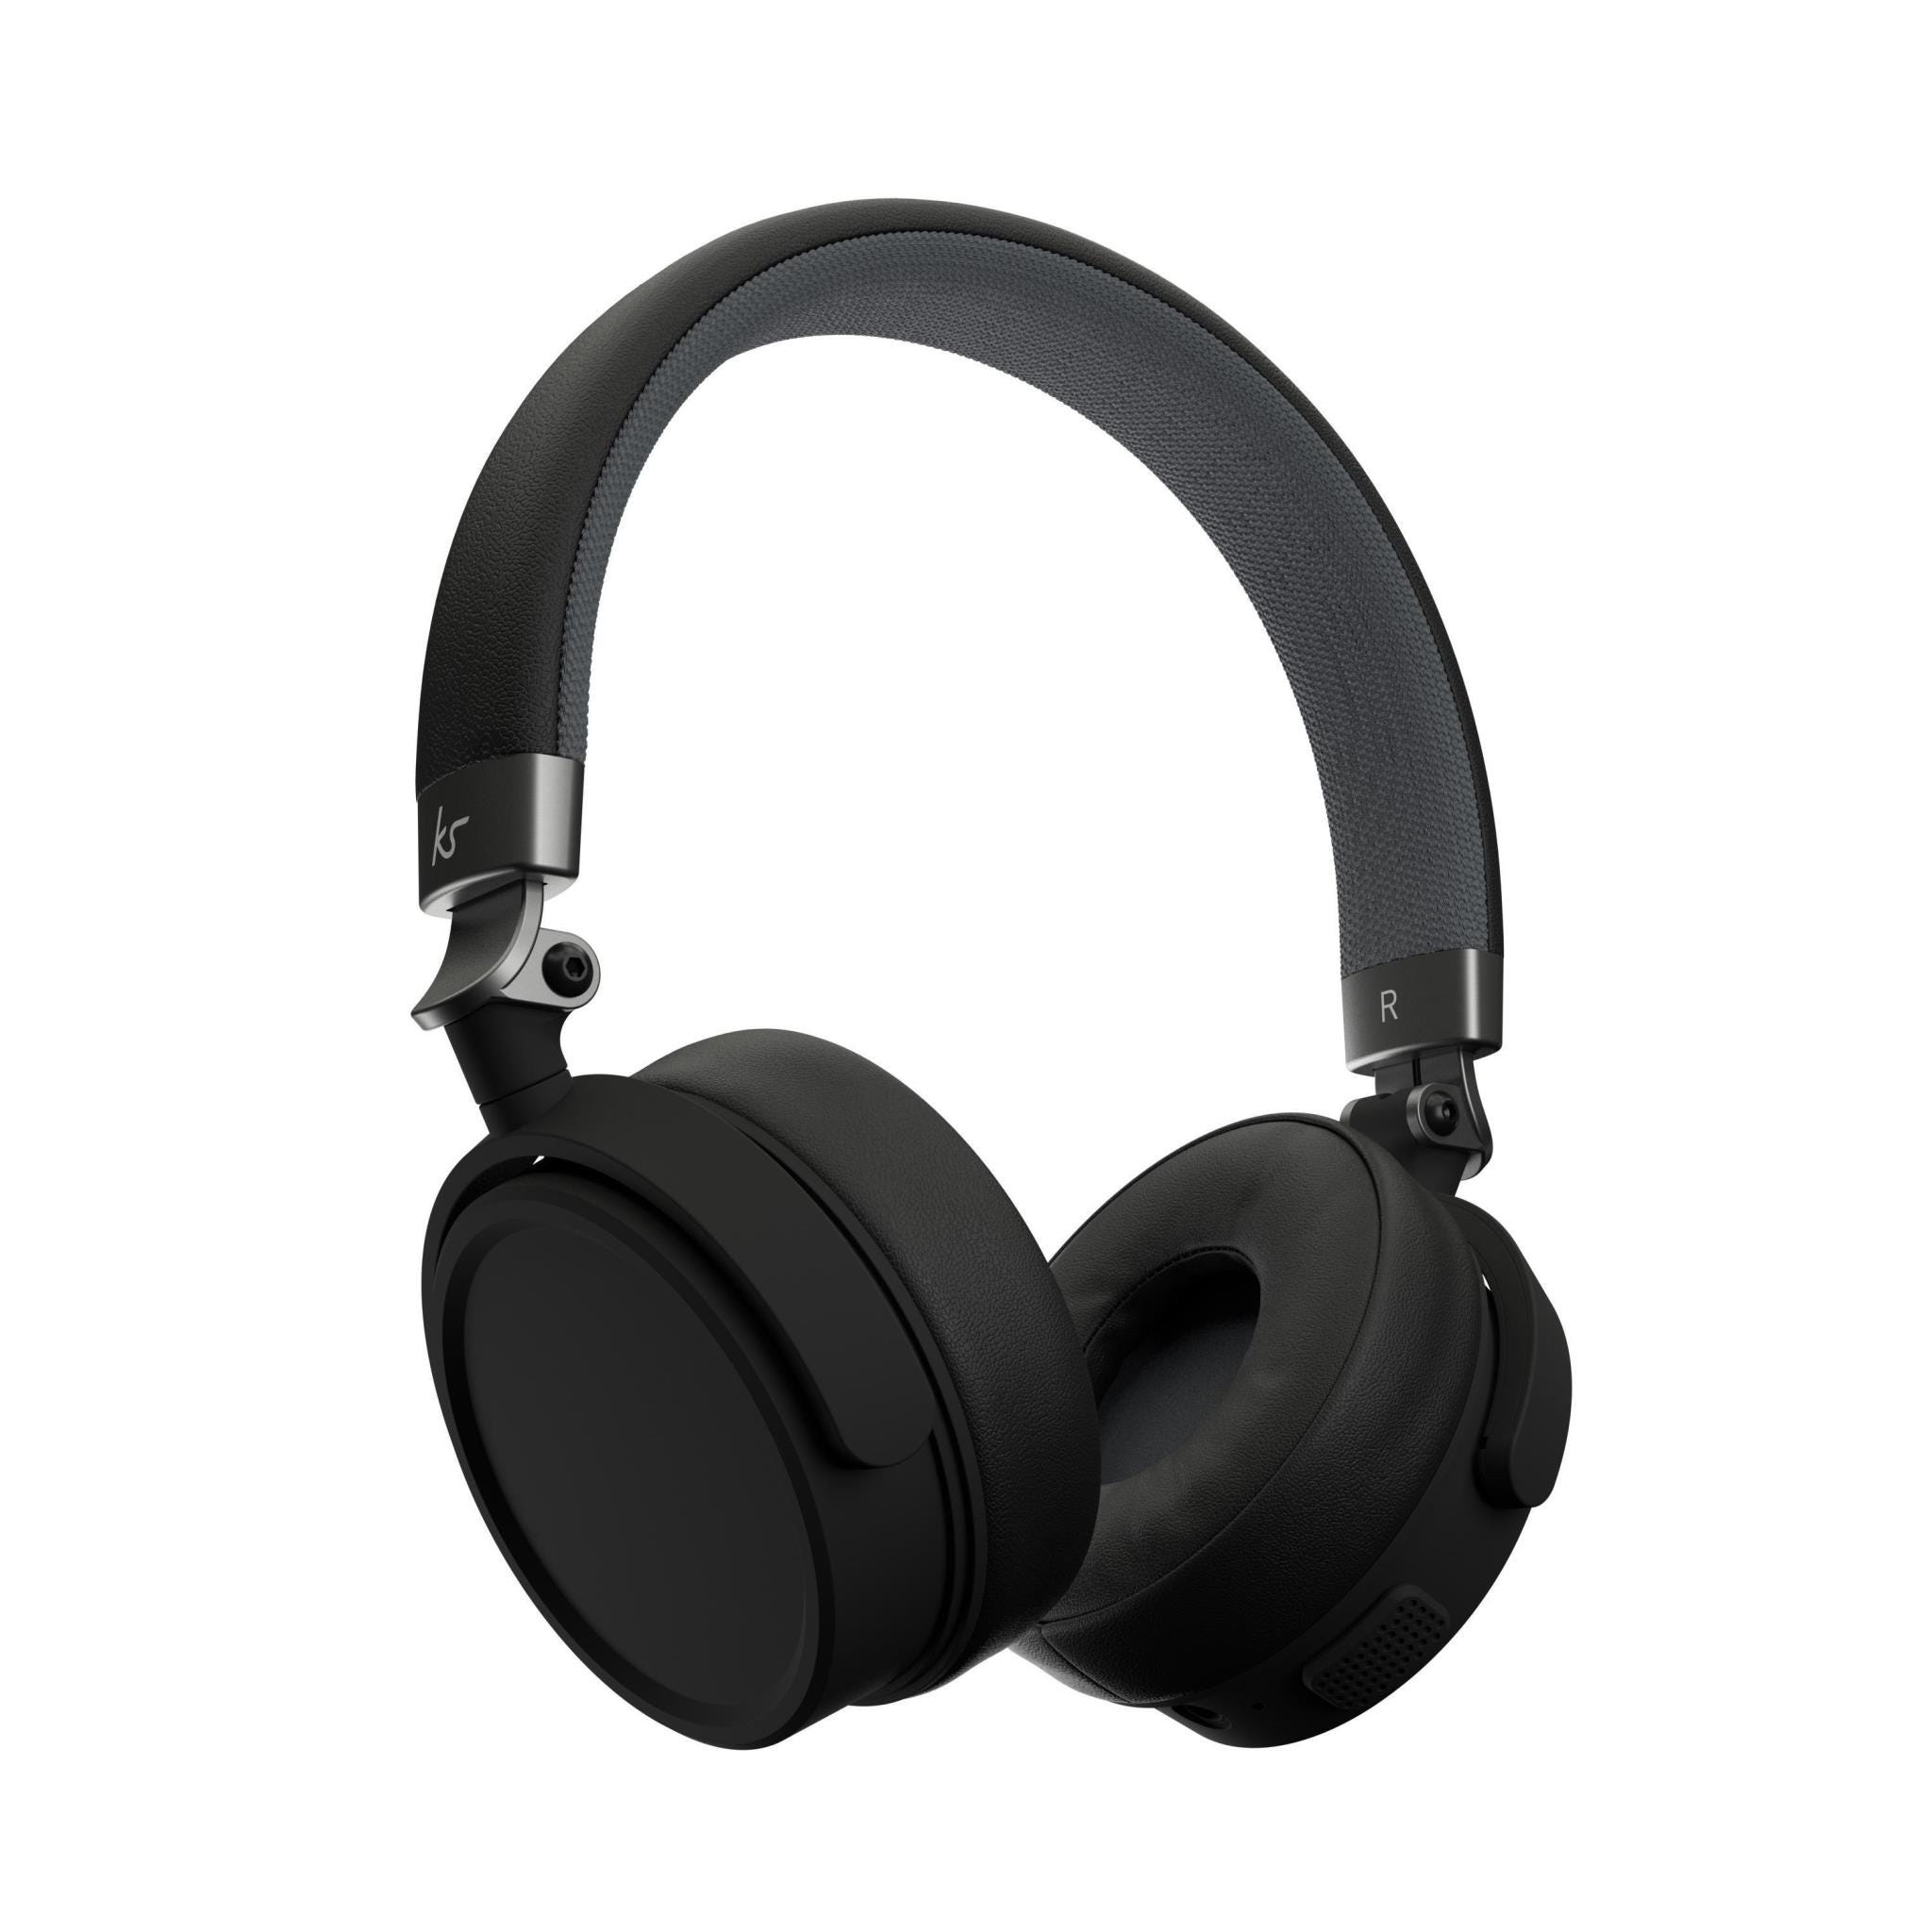 KitSound Accent 60 Wireless Bluetooth Over-Ear Headphones - Black